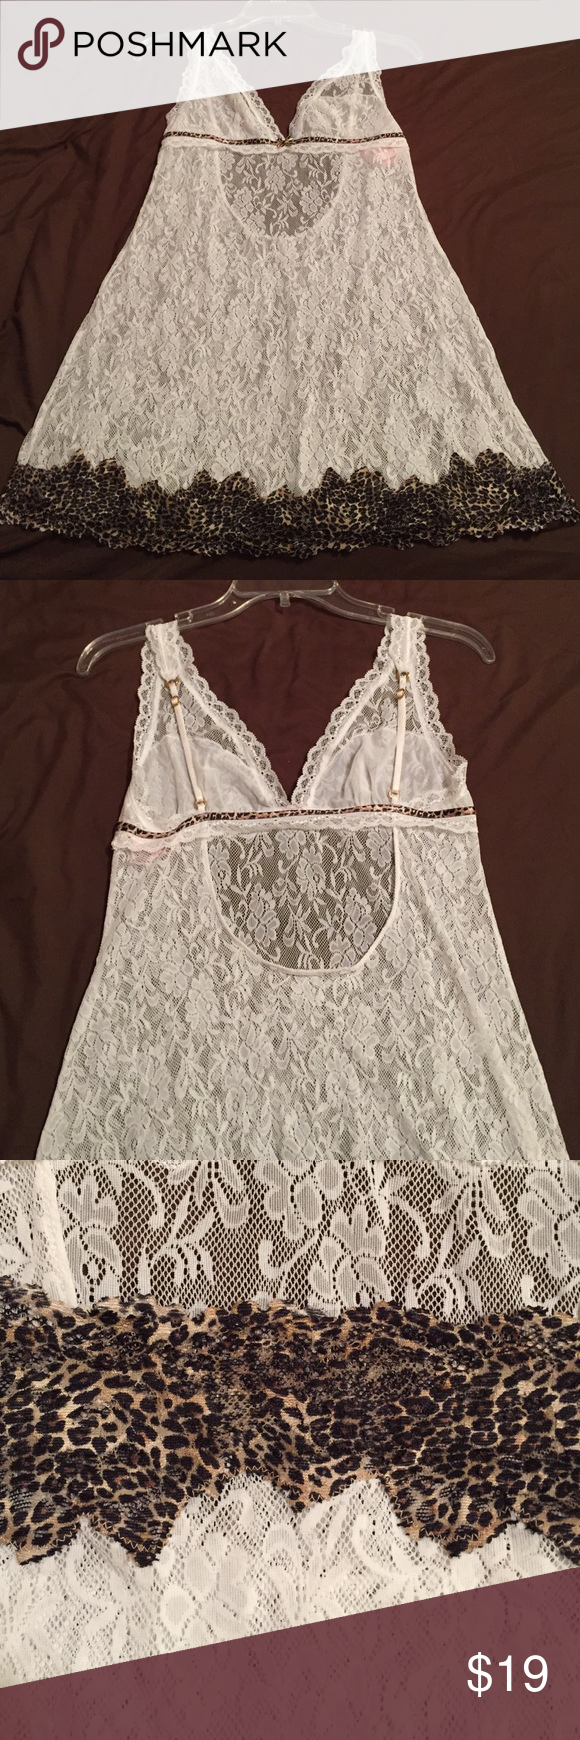 Bridal Lingerie Victoria's Secret Bridal Lingerie Victoria's Secret Intimates & Sleepwear